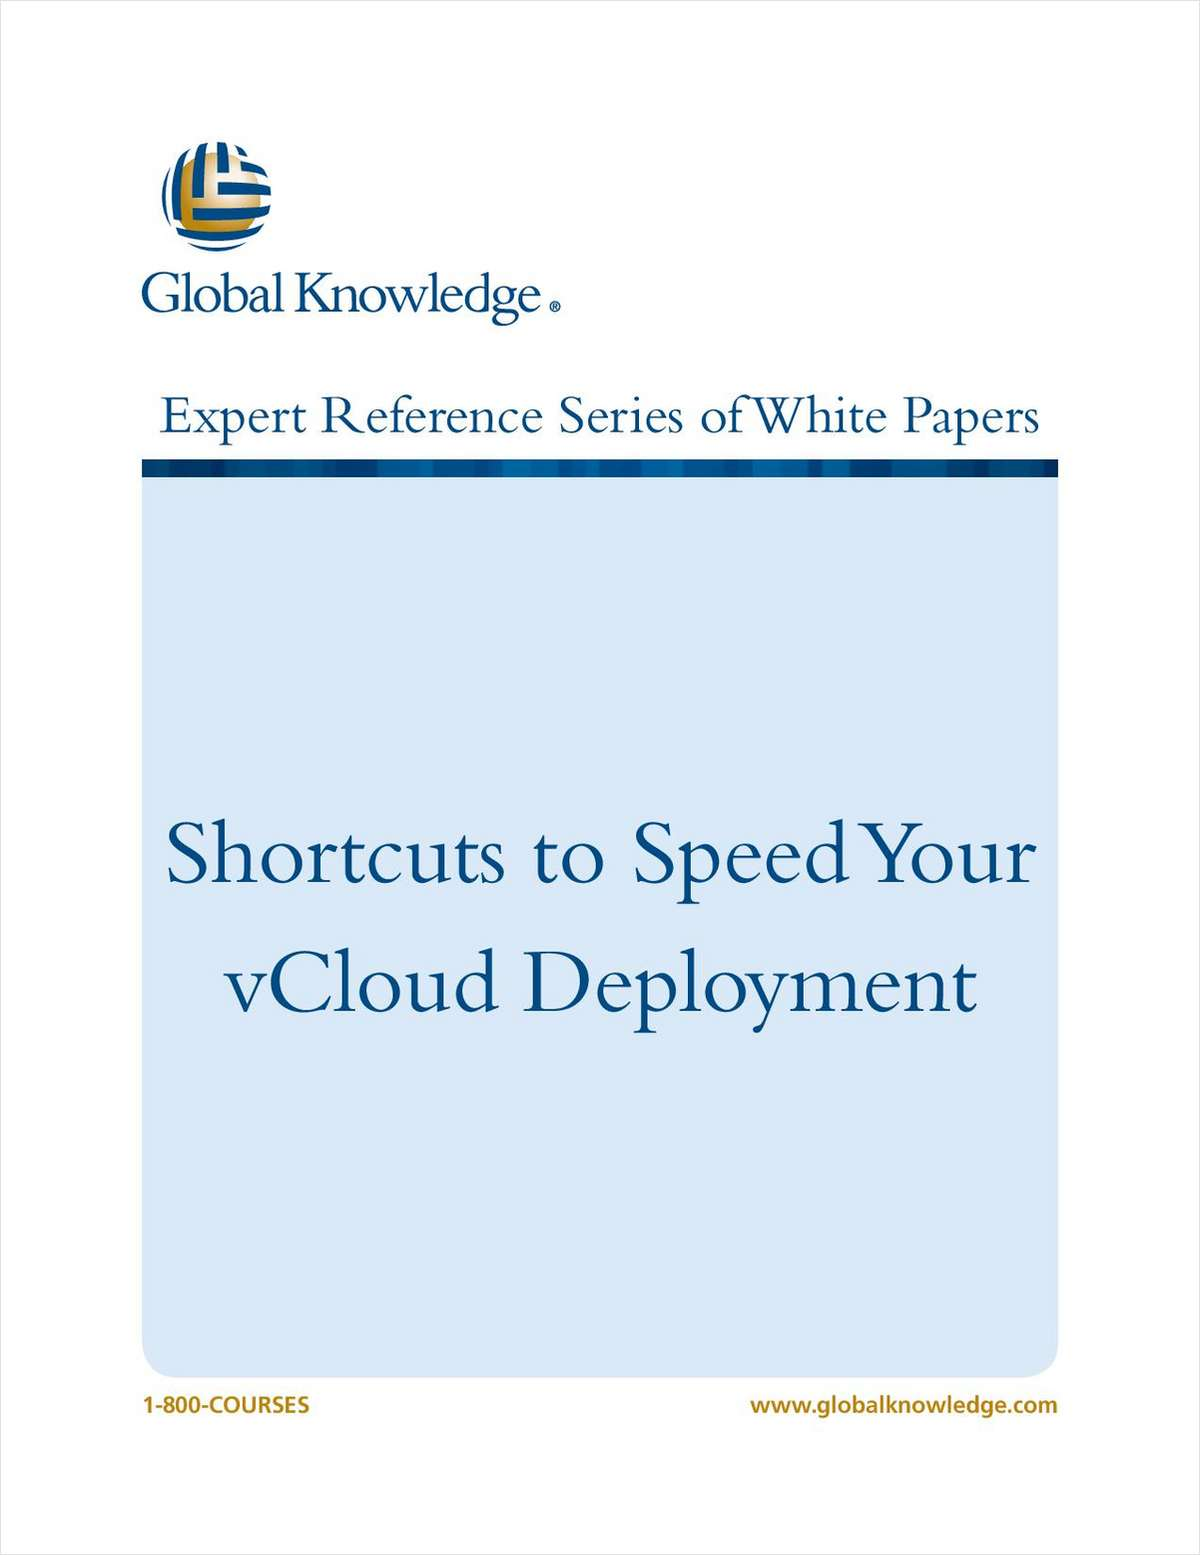 Shortcuts to Speed Your vCloud Deployment